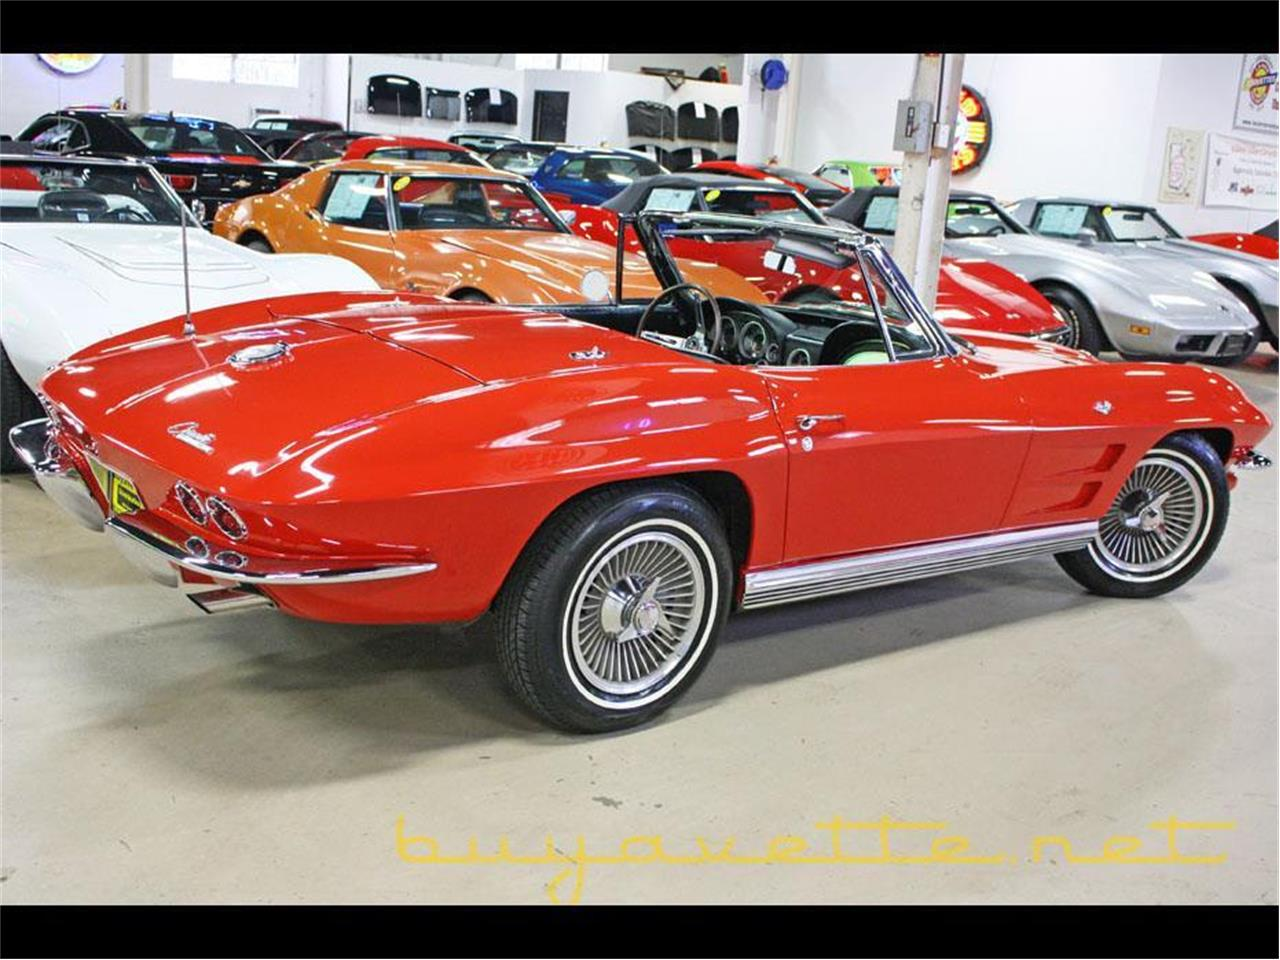 Large Picture of Classic '64 Chevrolet Corvette located in Georgia - $57,999.00 Offered by Buyavette - Q5ZM